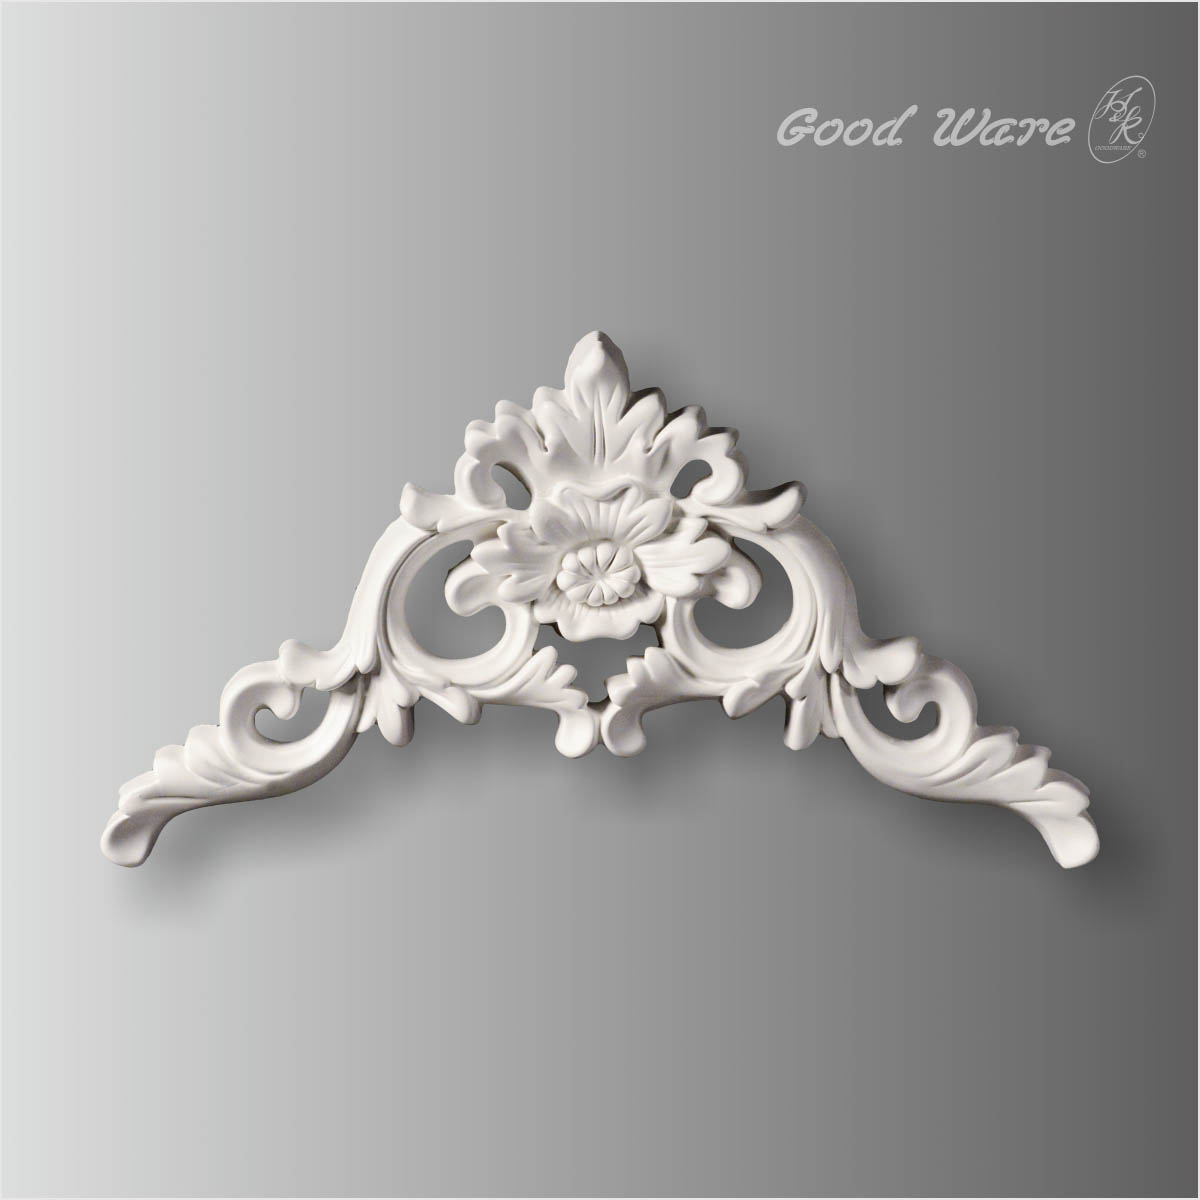 Wall art home decor appliques and onlays